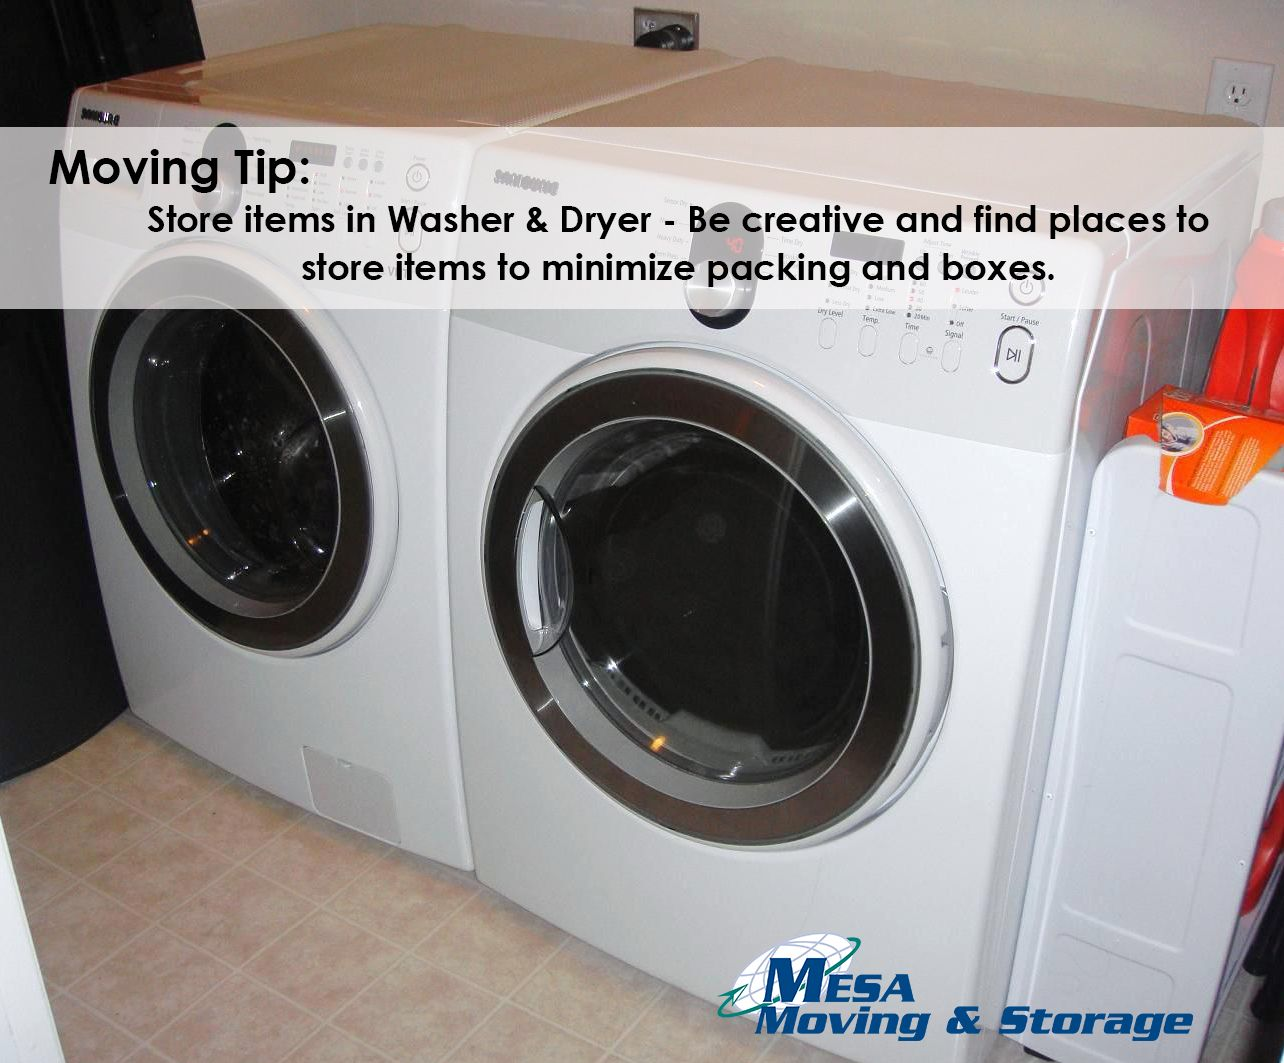 Moving Tip Store Clothes And Blankets In Washer And Dryer To Save